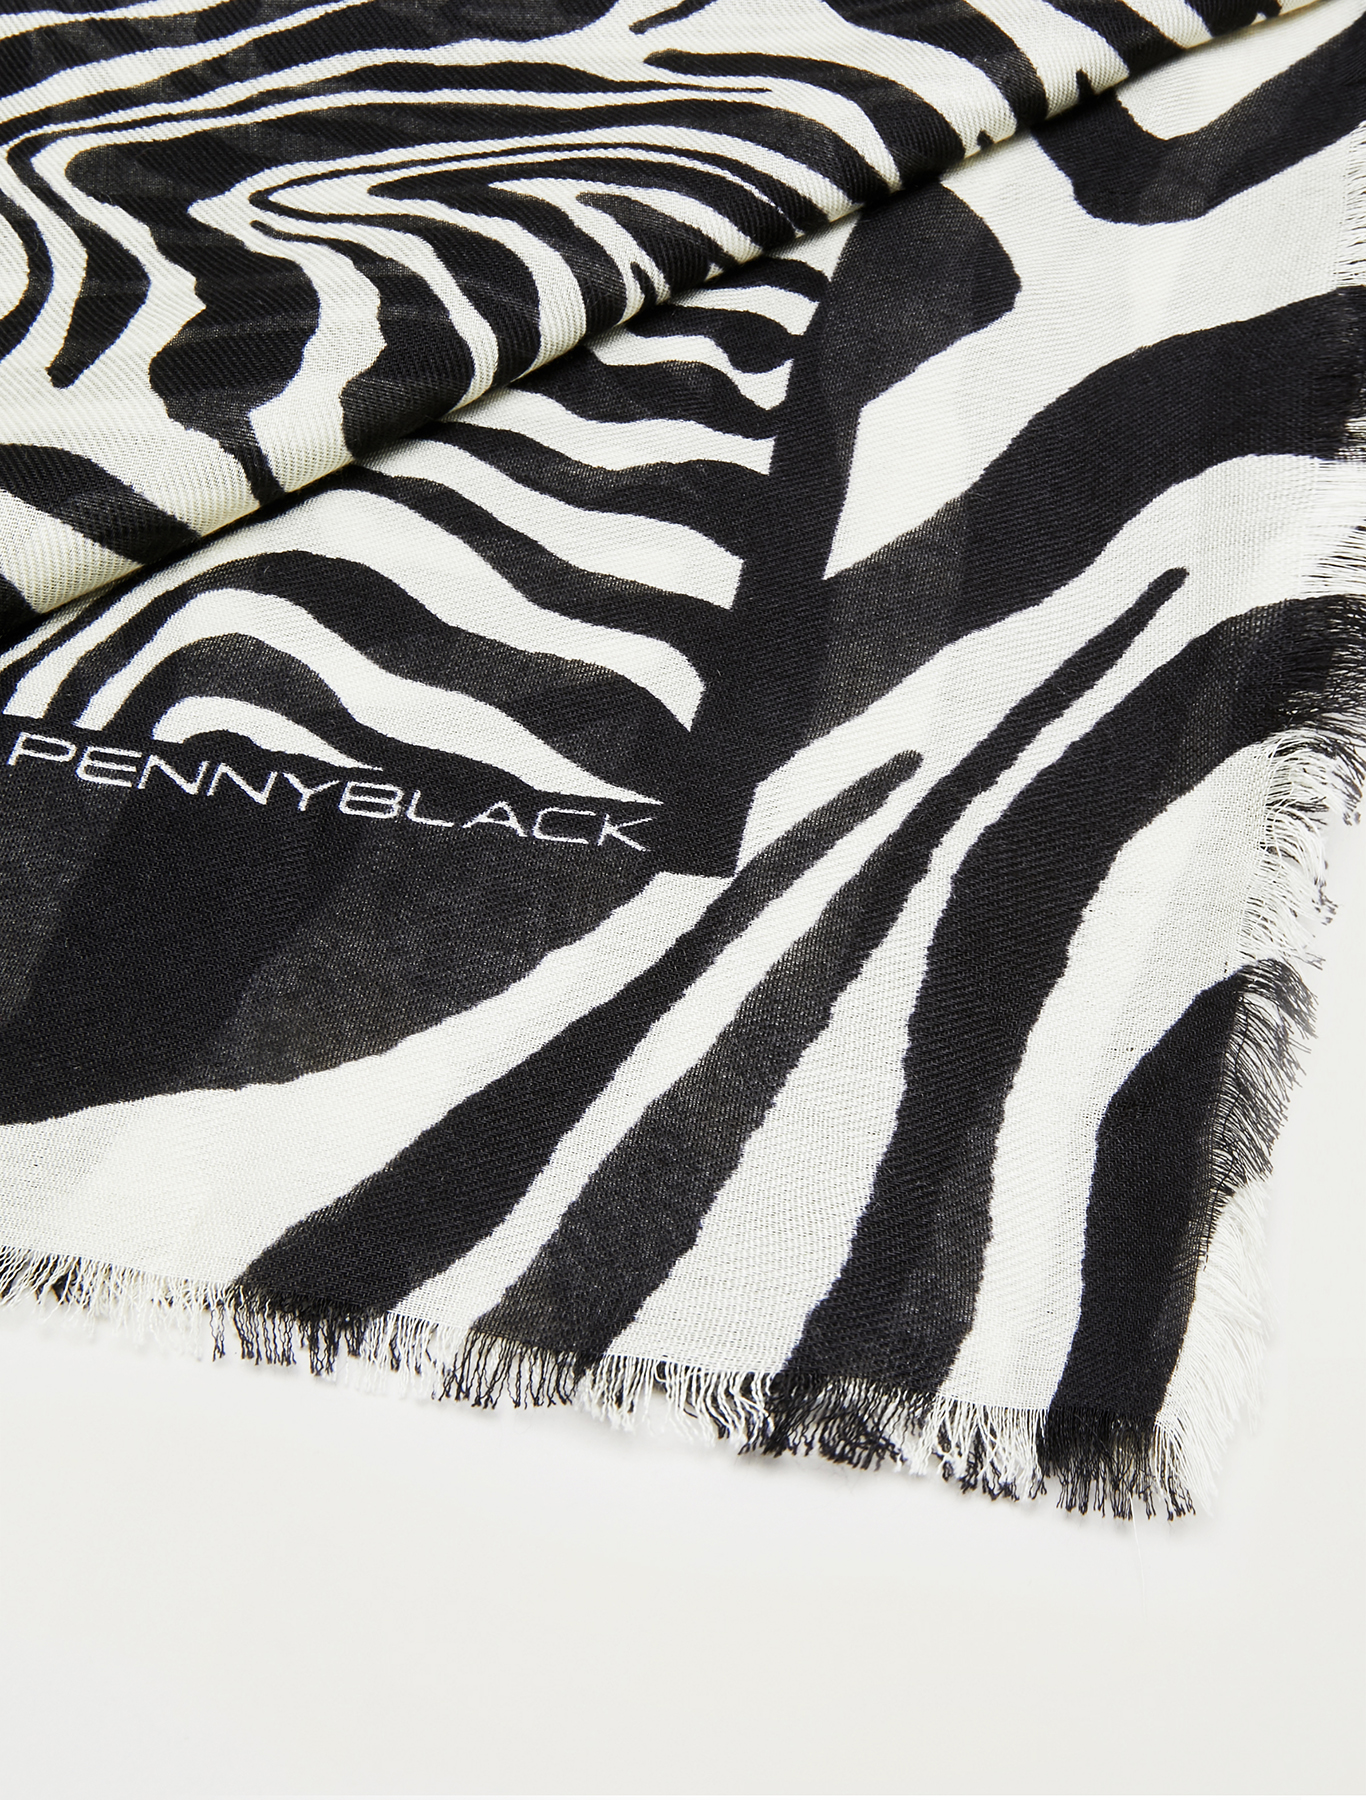 Printed stole - black - pennyblack